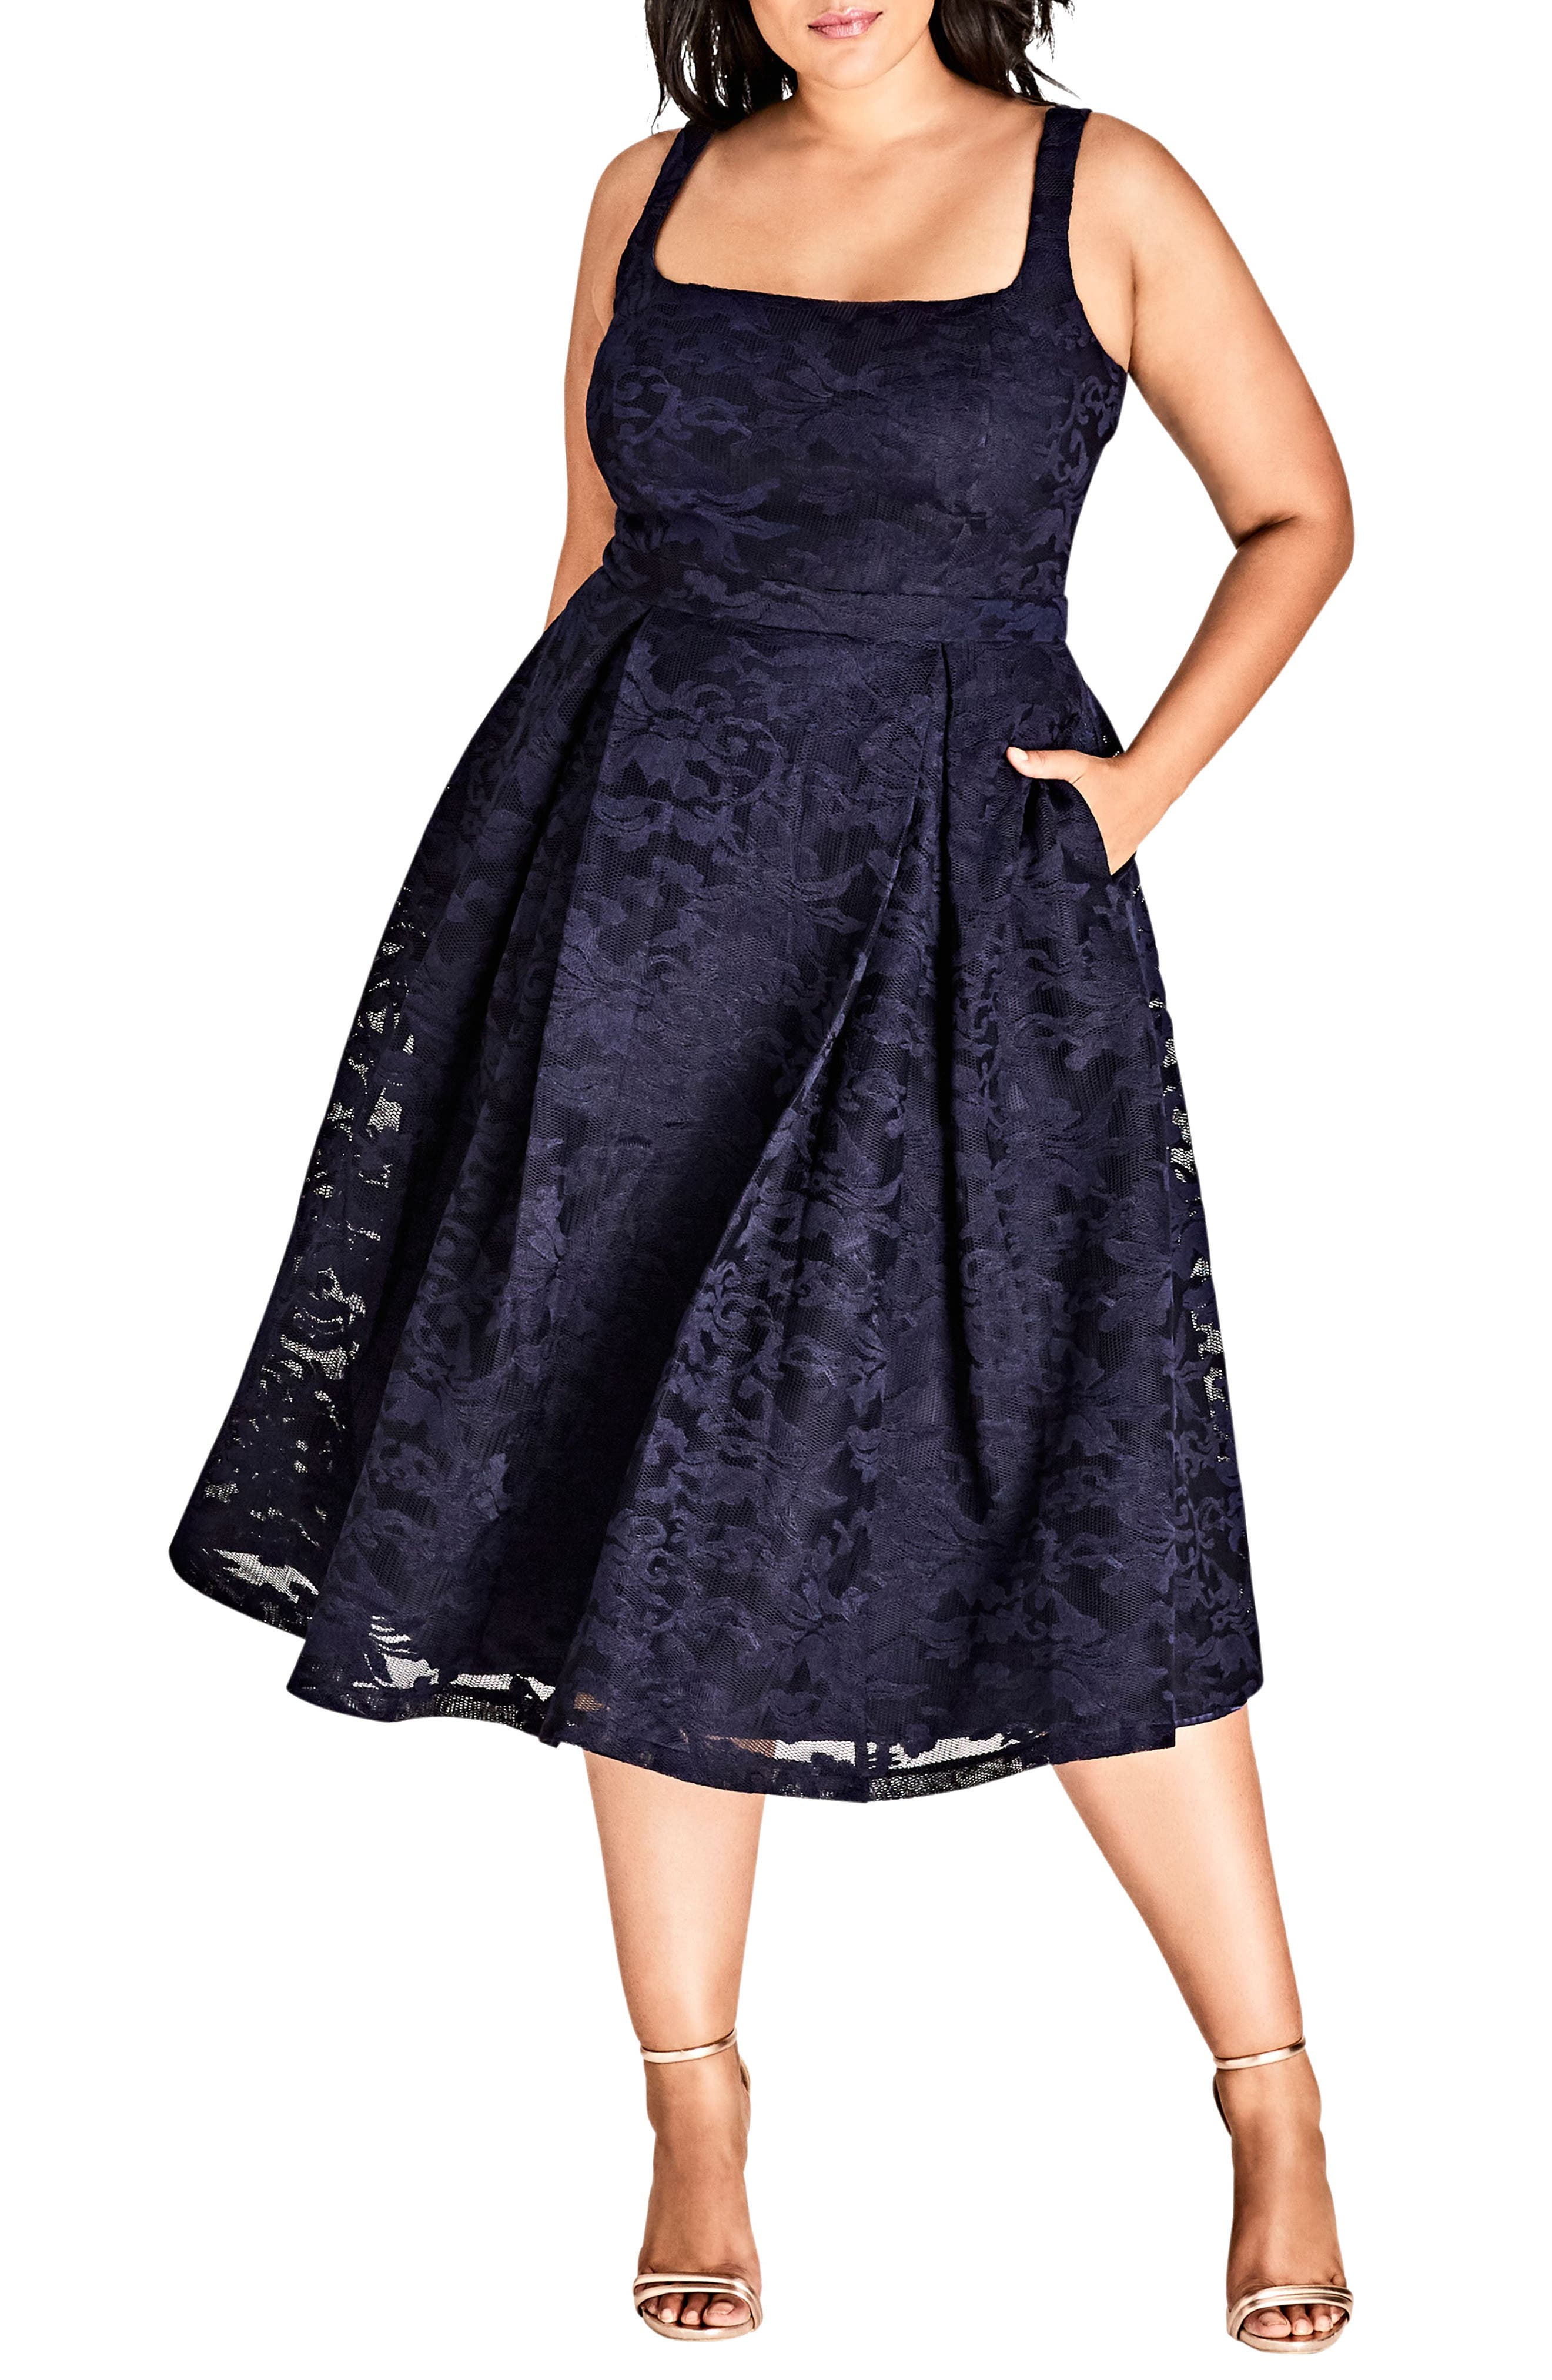 1950s Prom Dresses & Party Dresses Plus Size Womens City Chic Jackie O Lace Fit  Flare Dress Size X-Large - Blue $129.00 AT vintagedancer.com